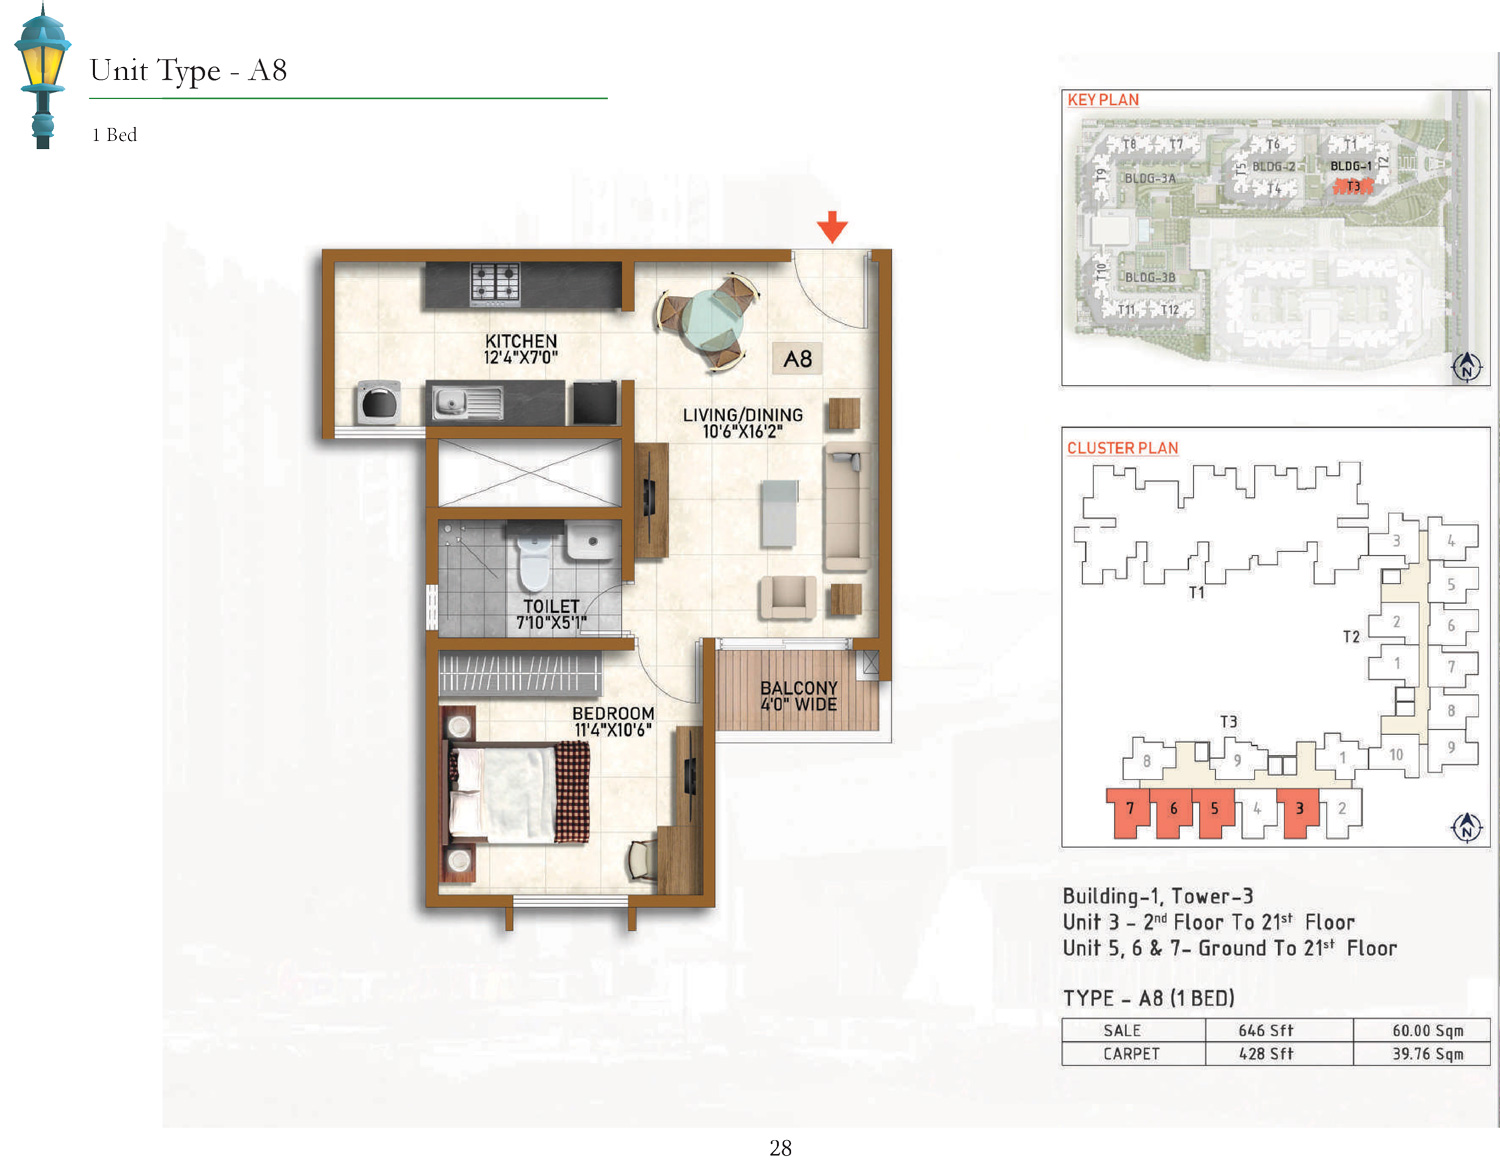 Type A8 - 646 Sq Ft